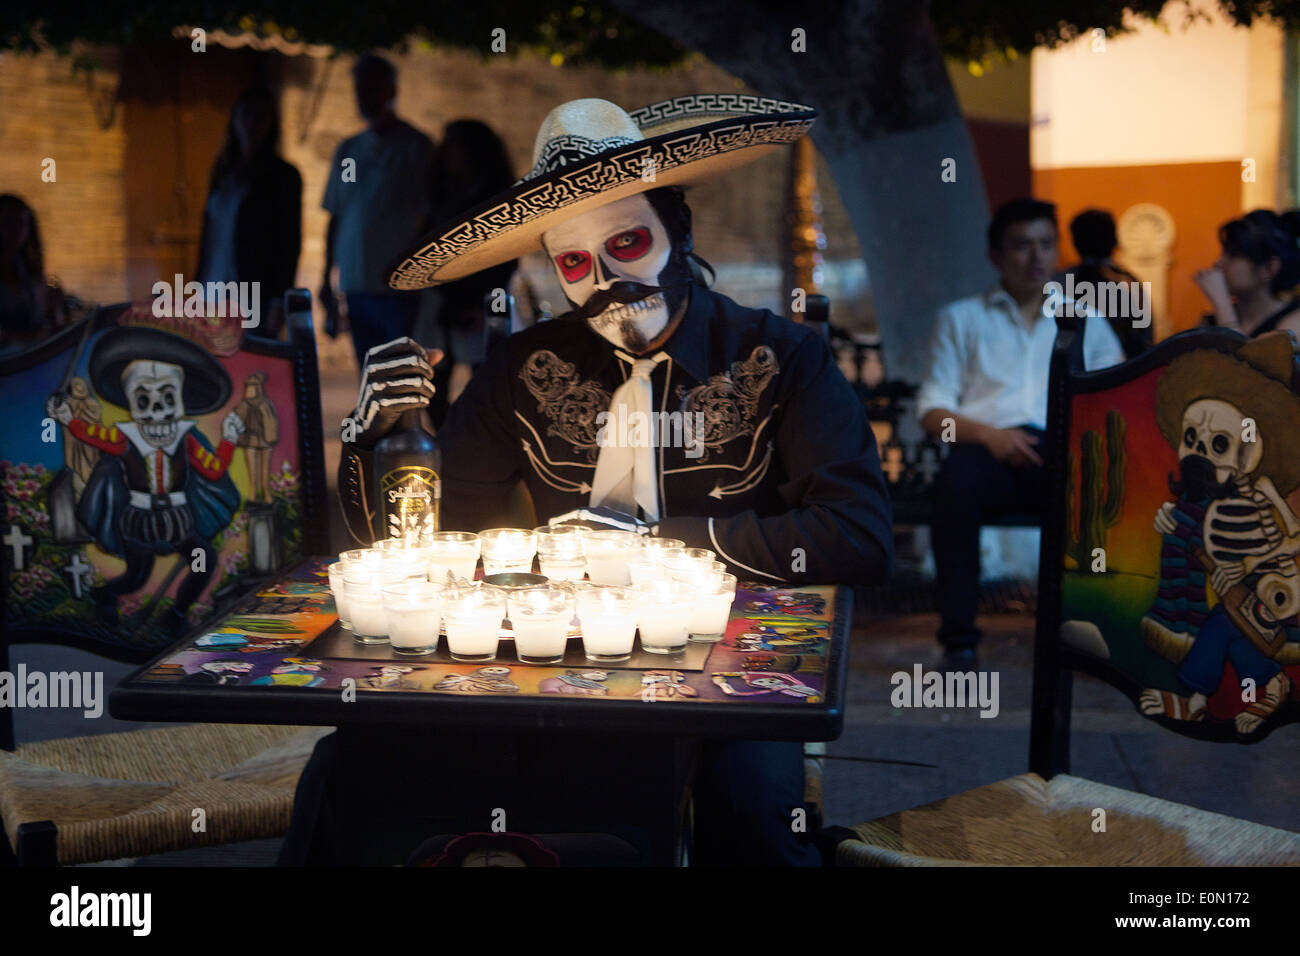 Man dressed as Day of the Dead skeleton at night Guanajuato Mexico - Stock Image